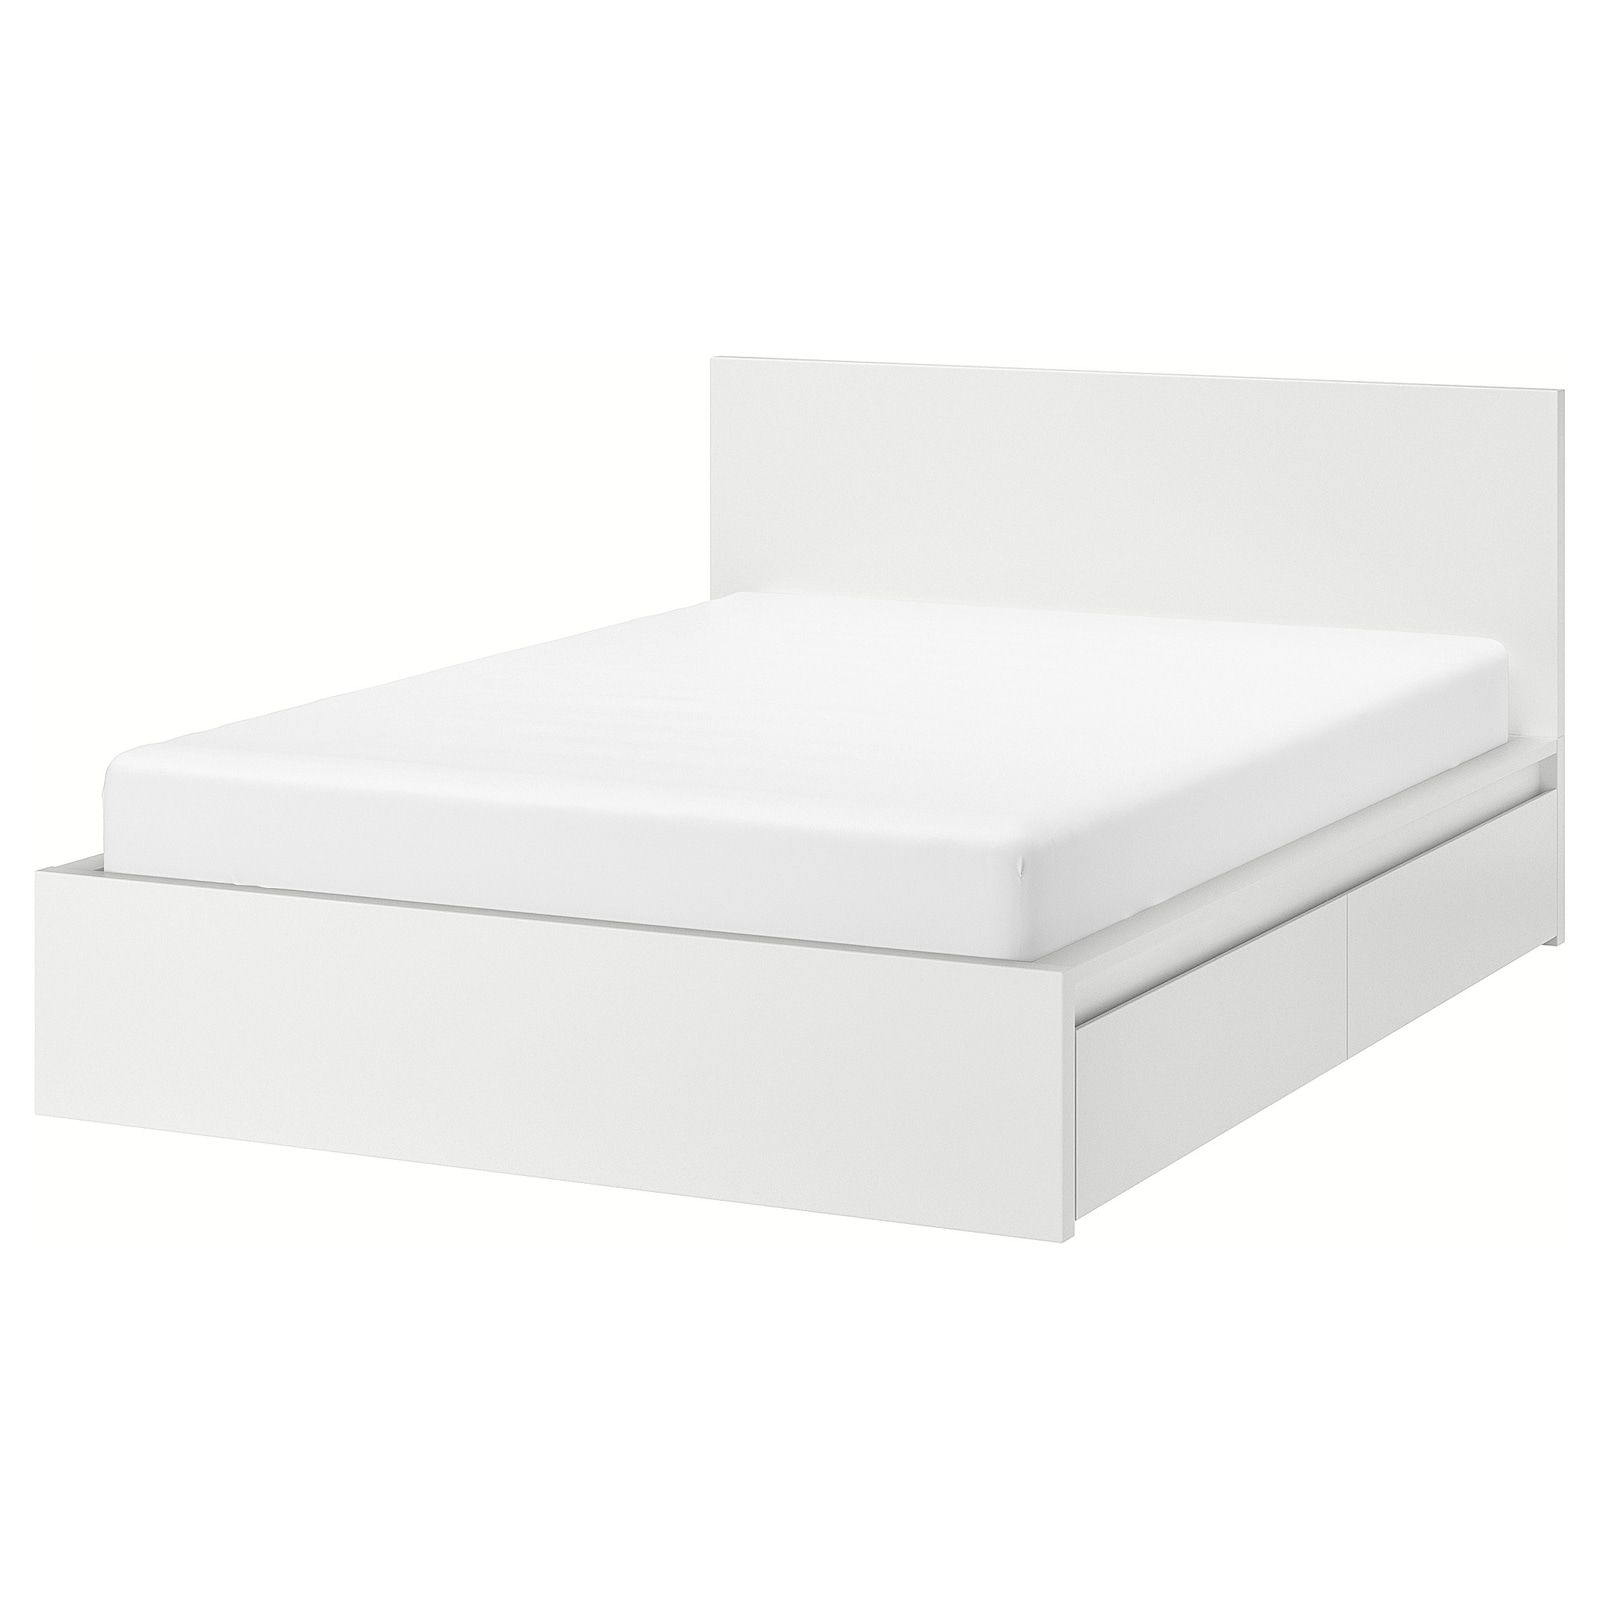 Malm White Lonset Bed Frame High W 4 Storage Boxes 160x200 Cm Ikea In 2020 High Bed Frame Malm Bed Frame Malm Bed